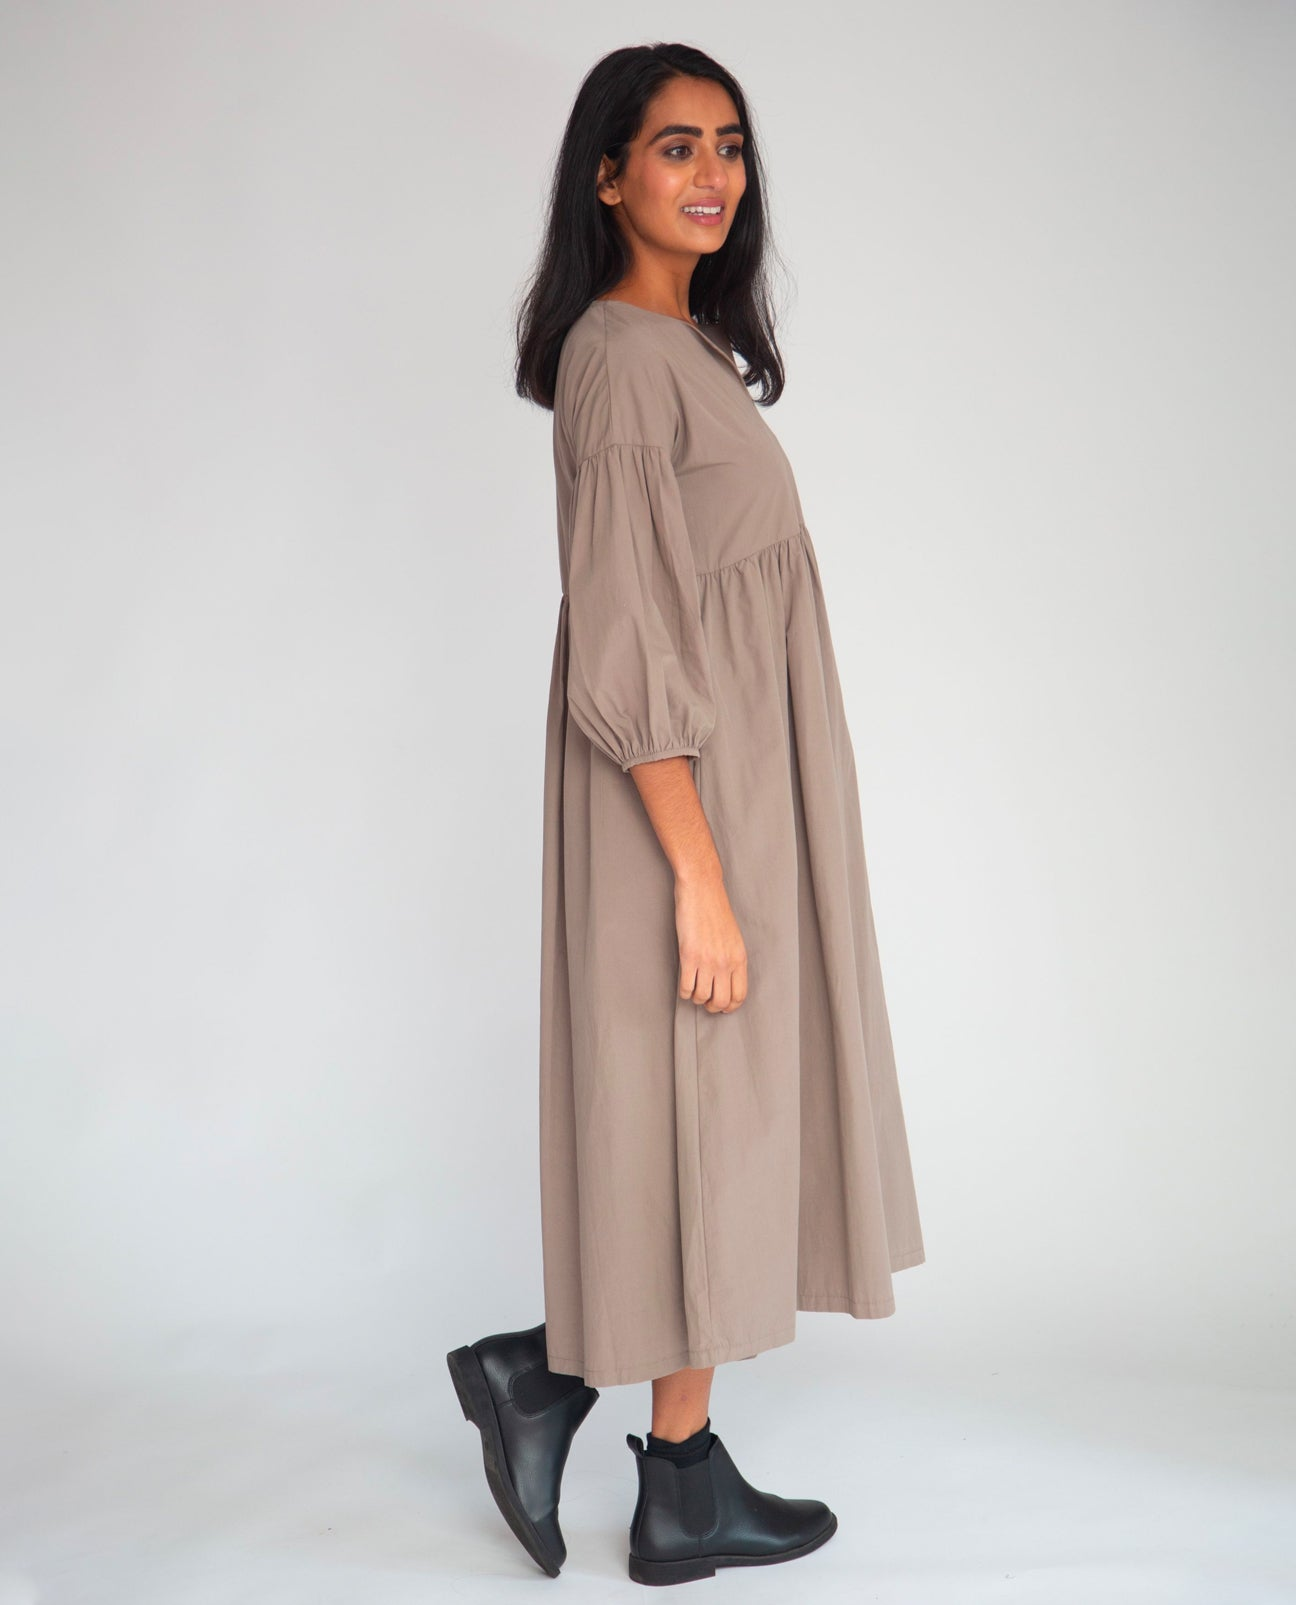 Meilani Organic Cotton Dress In Olive